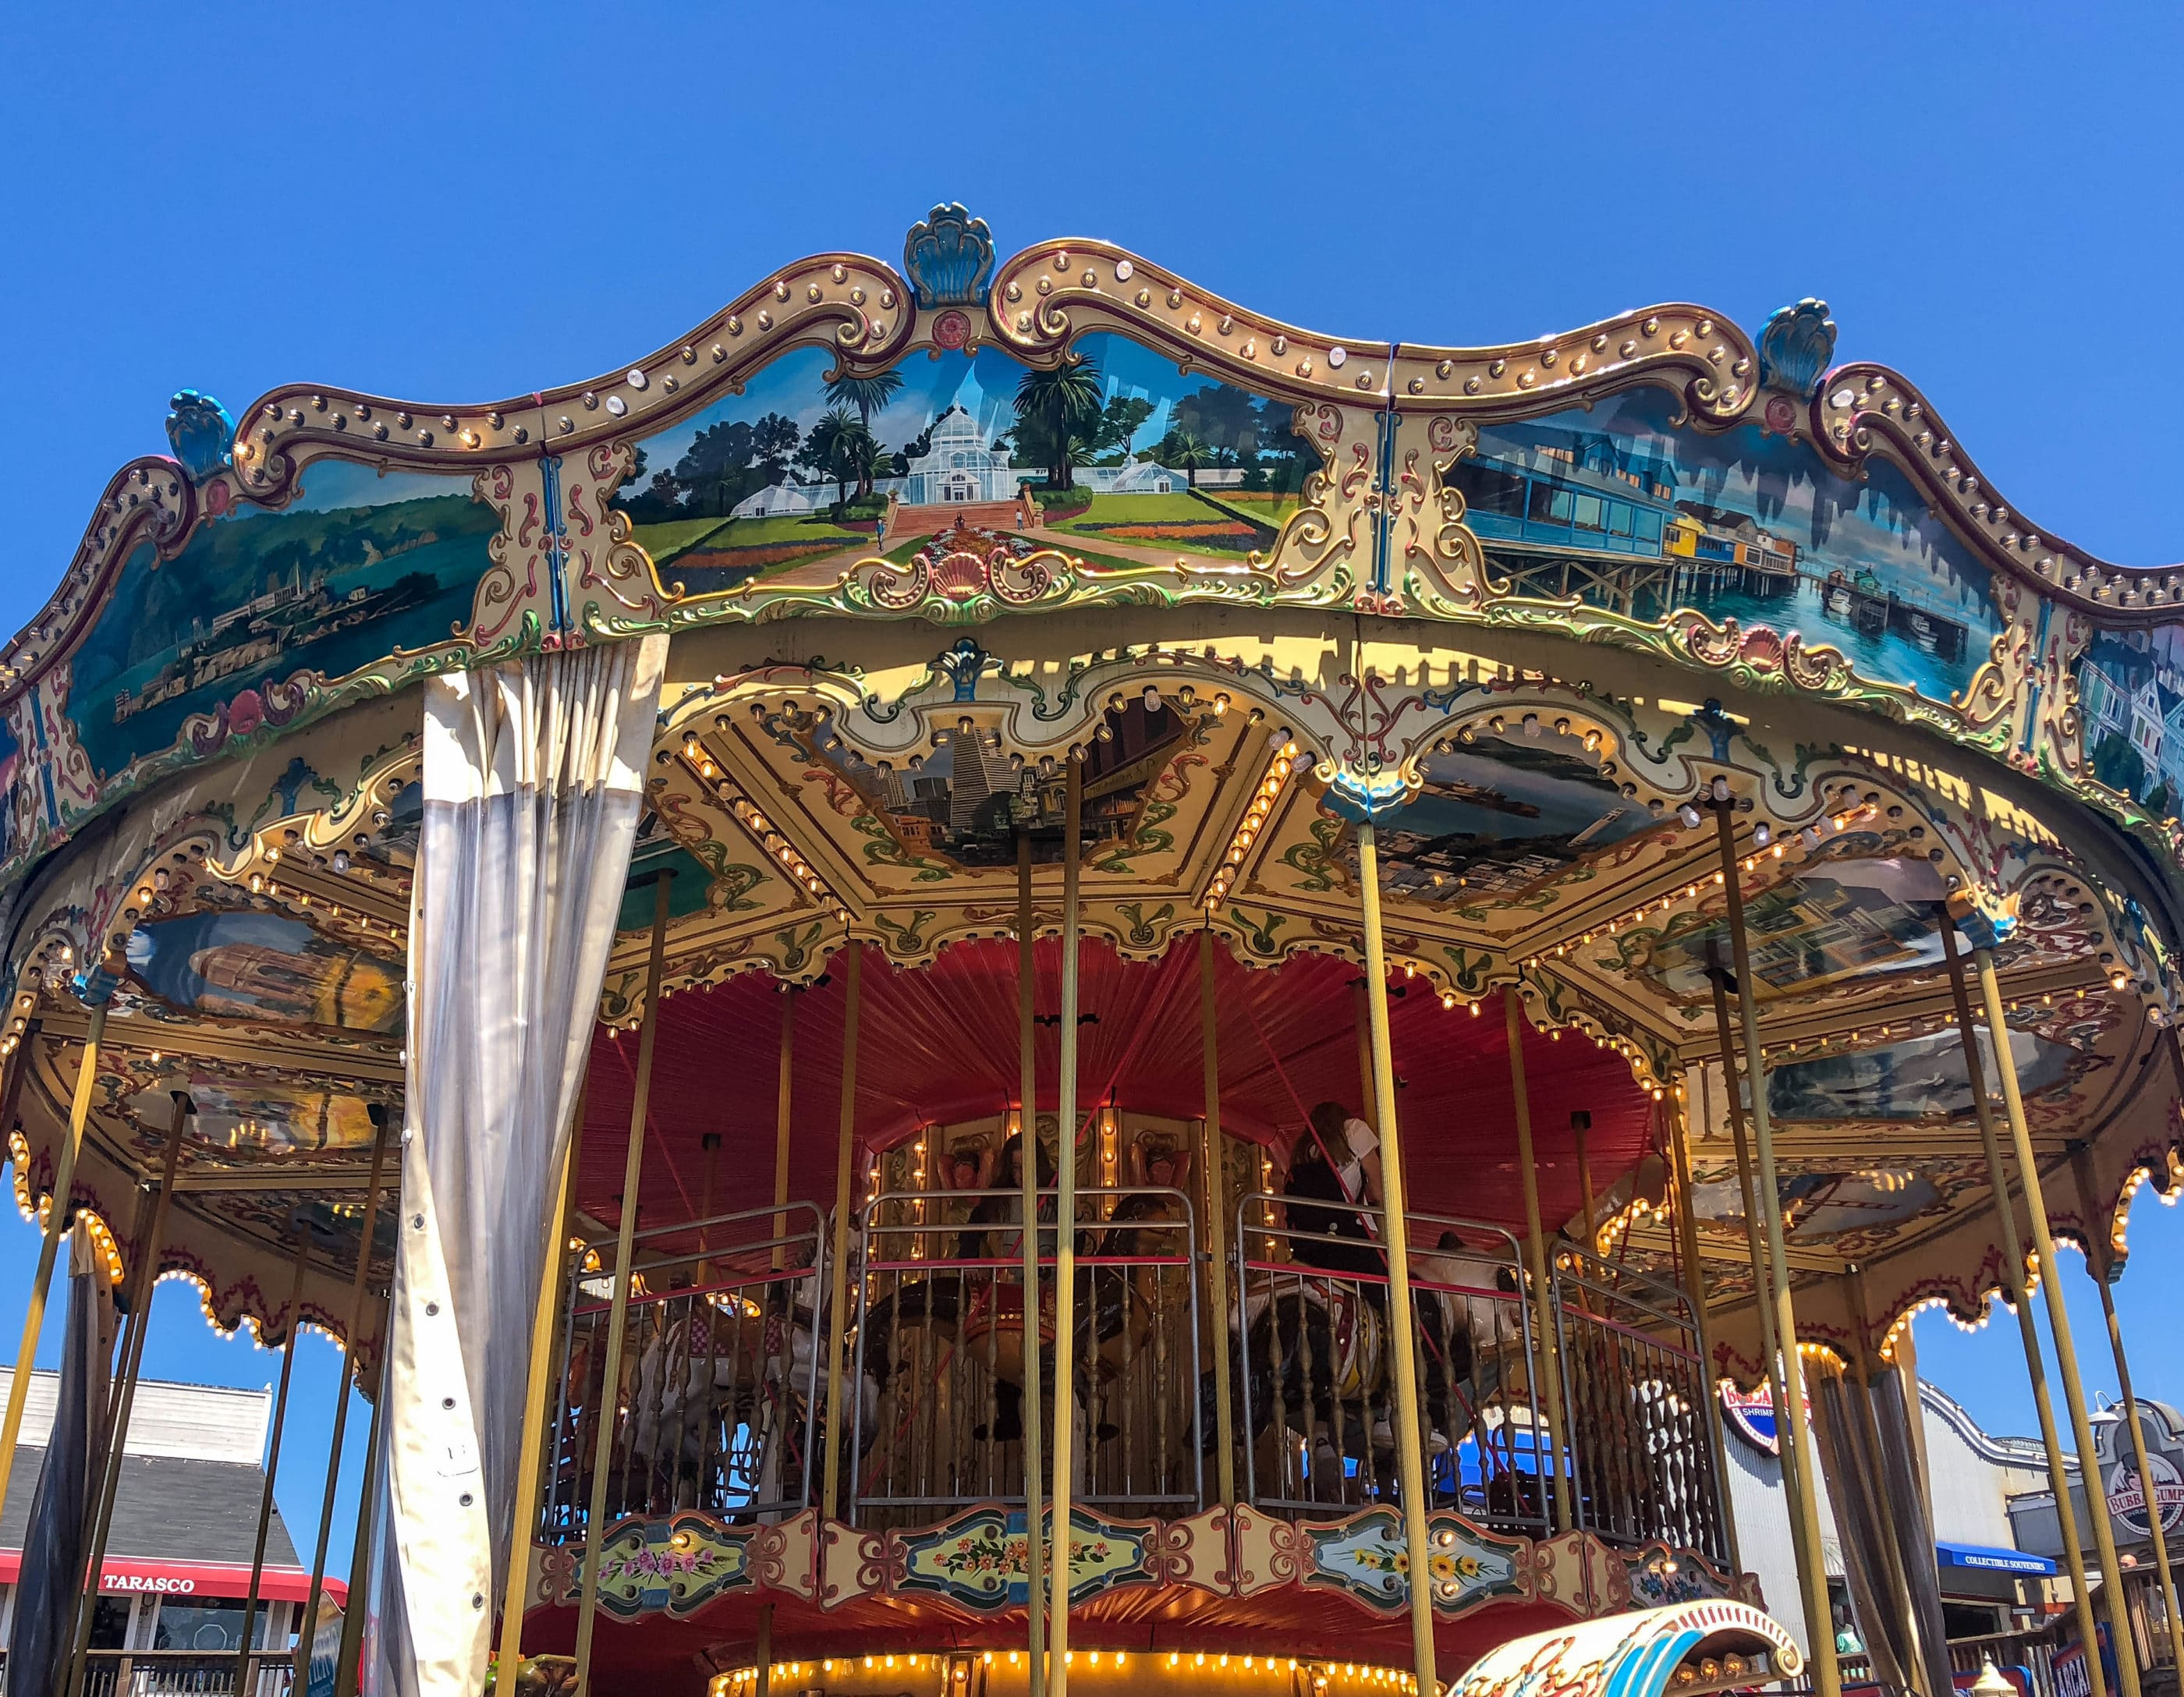 Looking up at the Carousel at Pier 39 in San Francisco